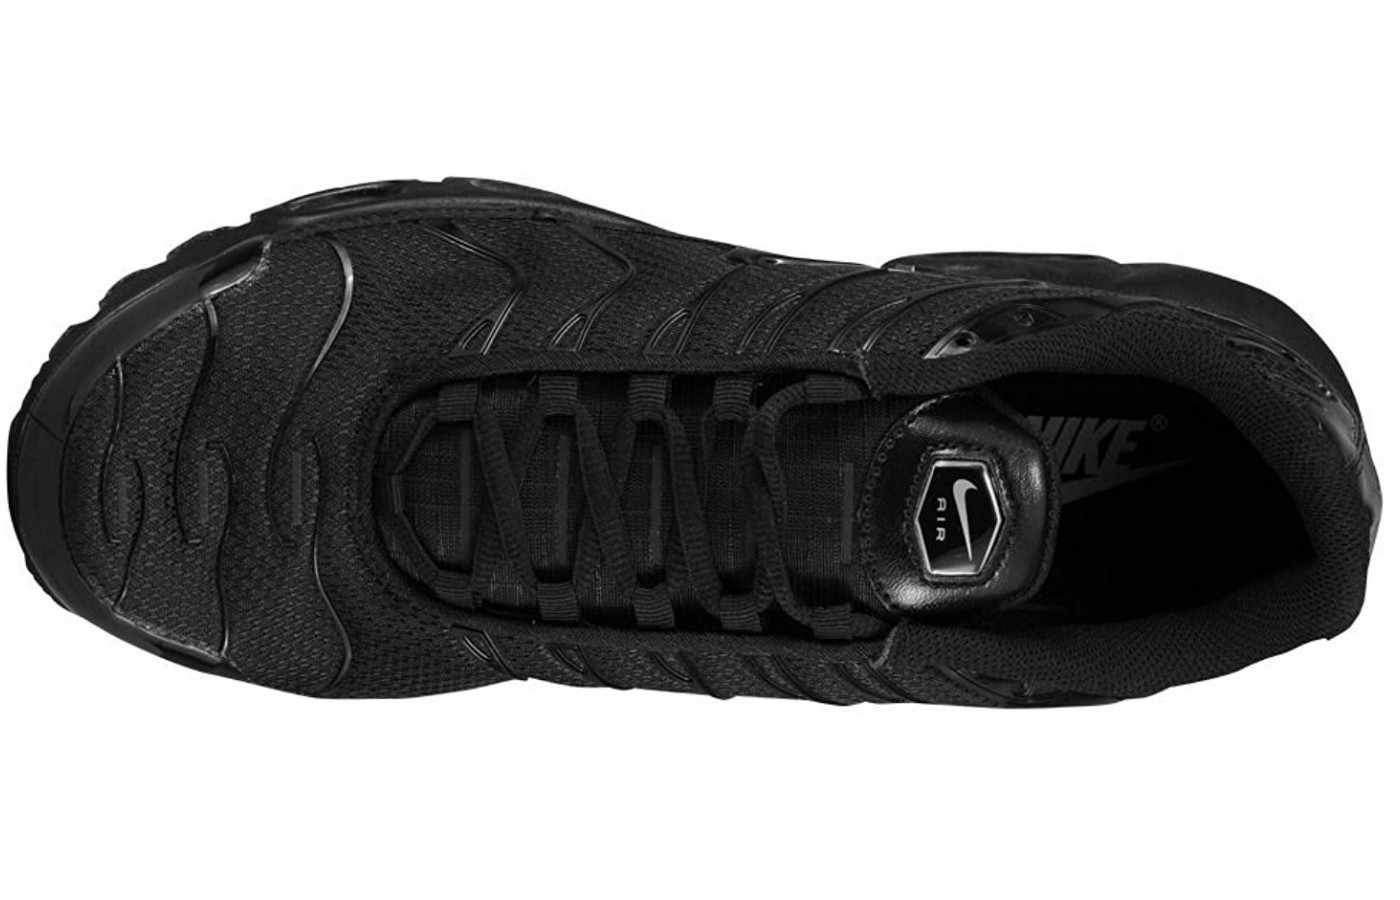 finest selection d9665 15661 ... A top view of the Nike Air Max Plus shoe ...